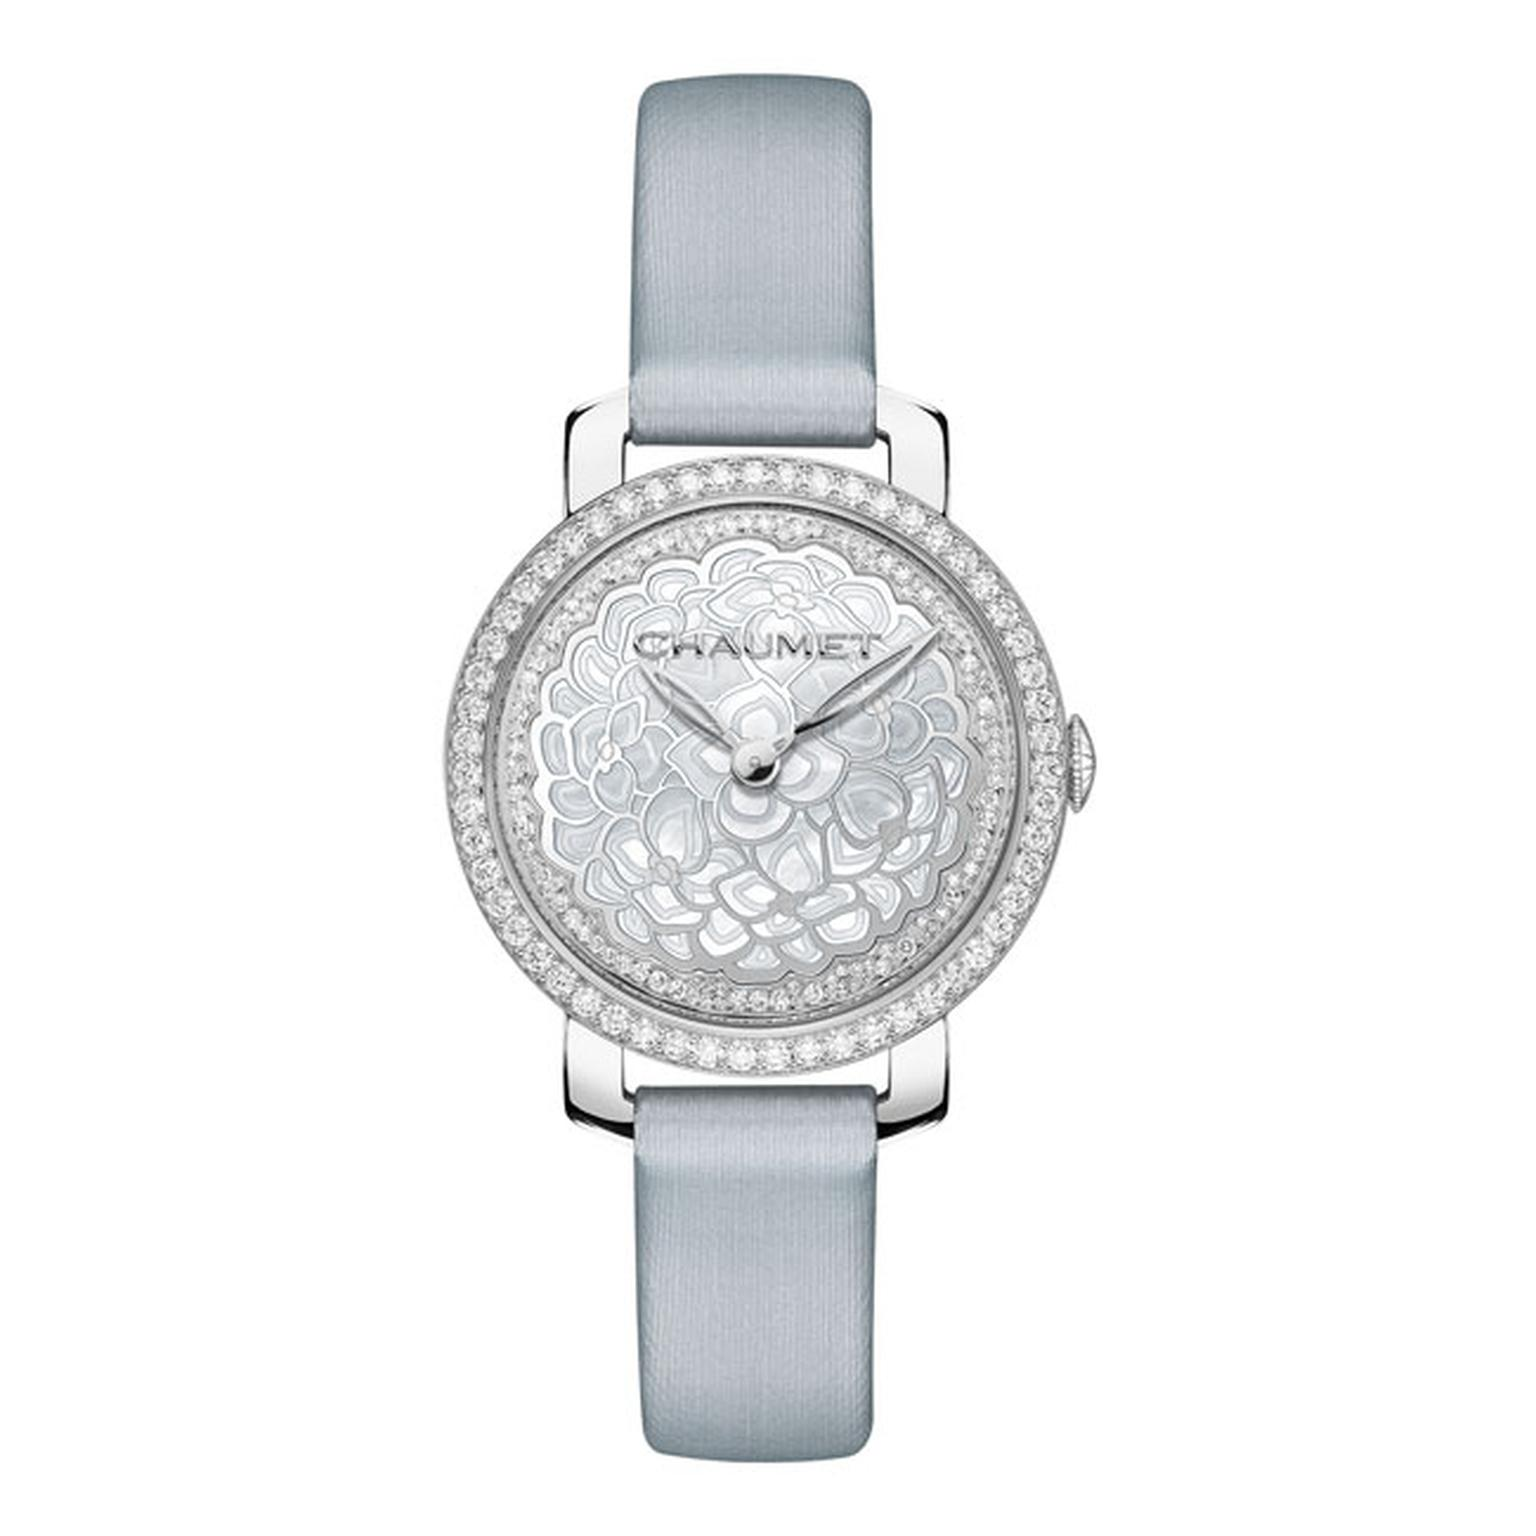 Chaumet Hortensia watch with grey strap_main